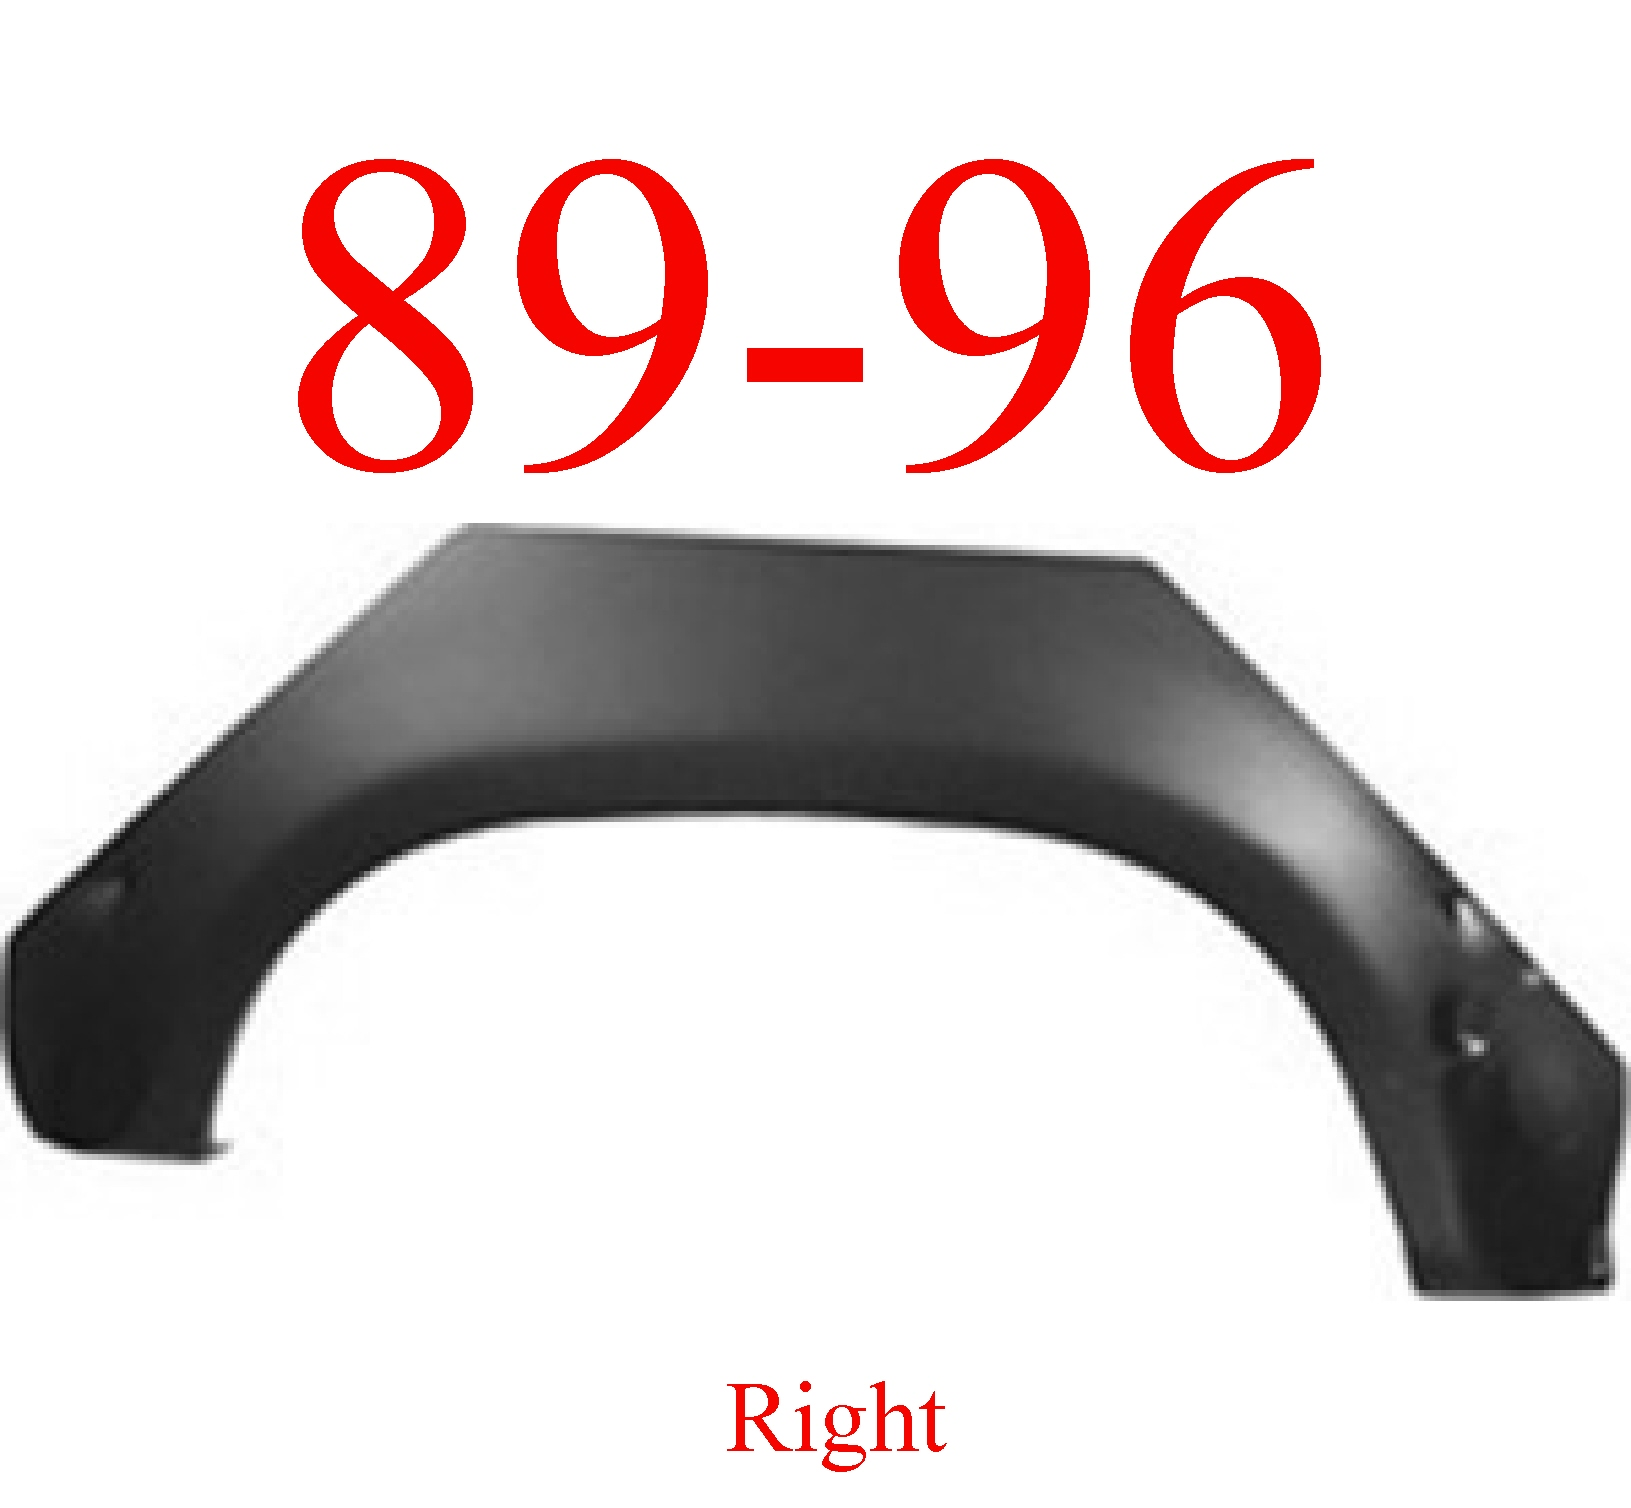 89-96 Toyota Pick Up Right Upper Arch Panel